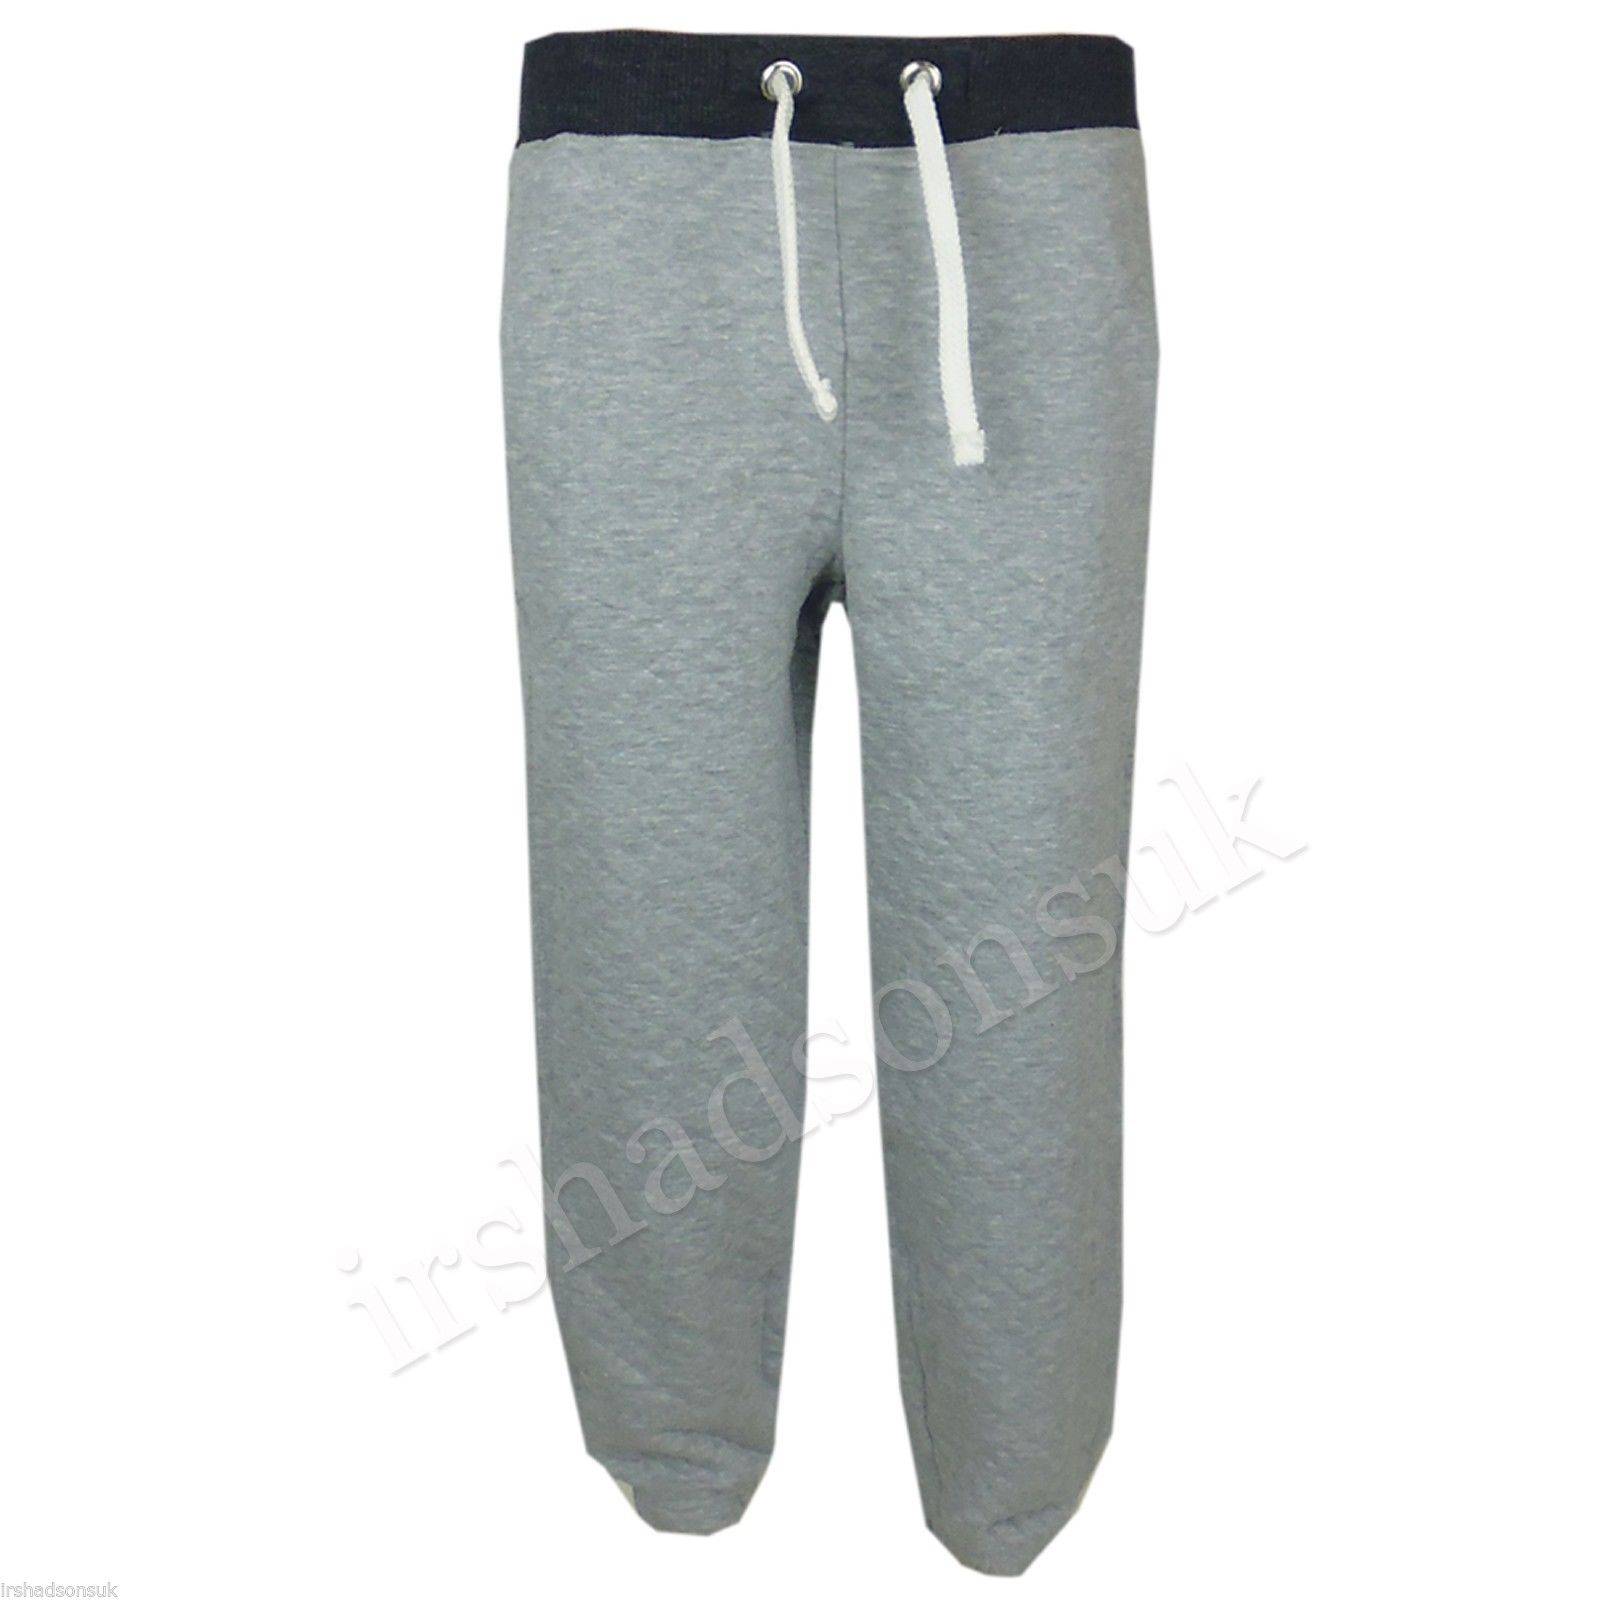 Kids Girls Boys Quilted Plain Fleece Casual Jogging Trouser Pant ... : quilted trousers - Adamdwight.com